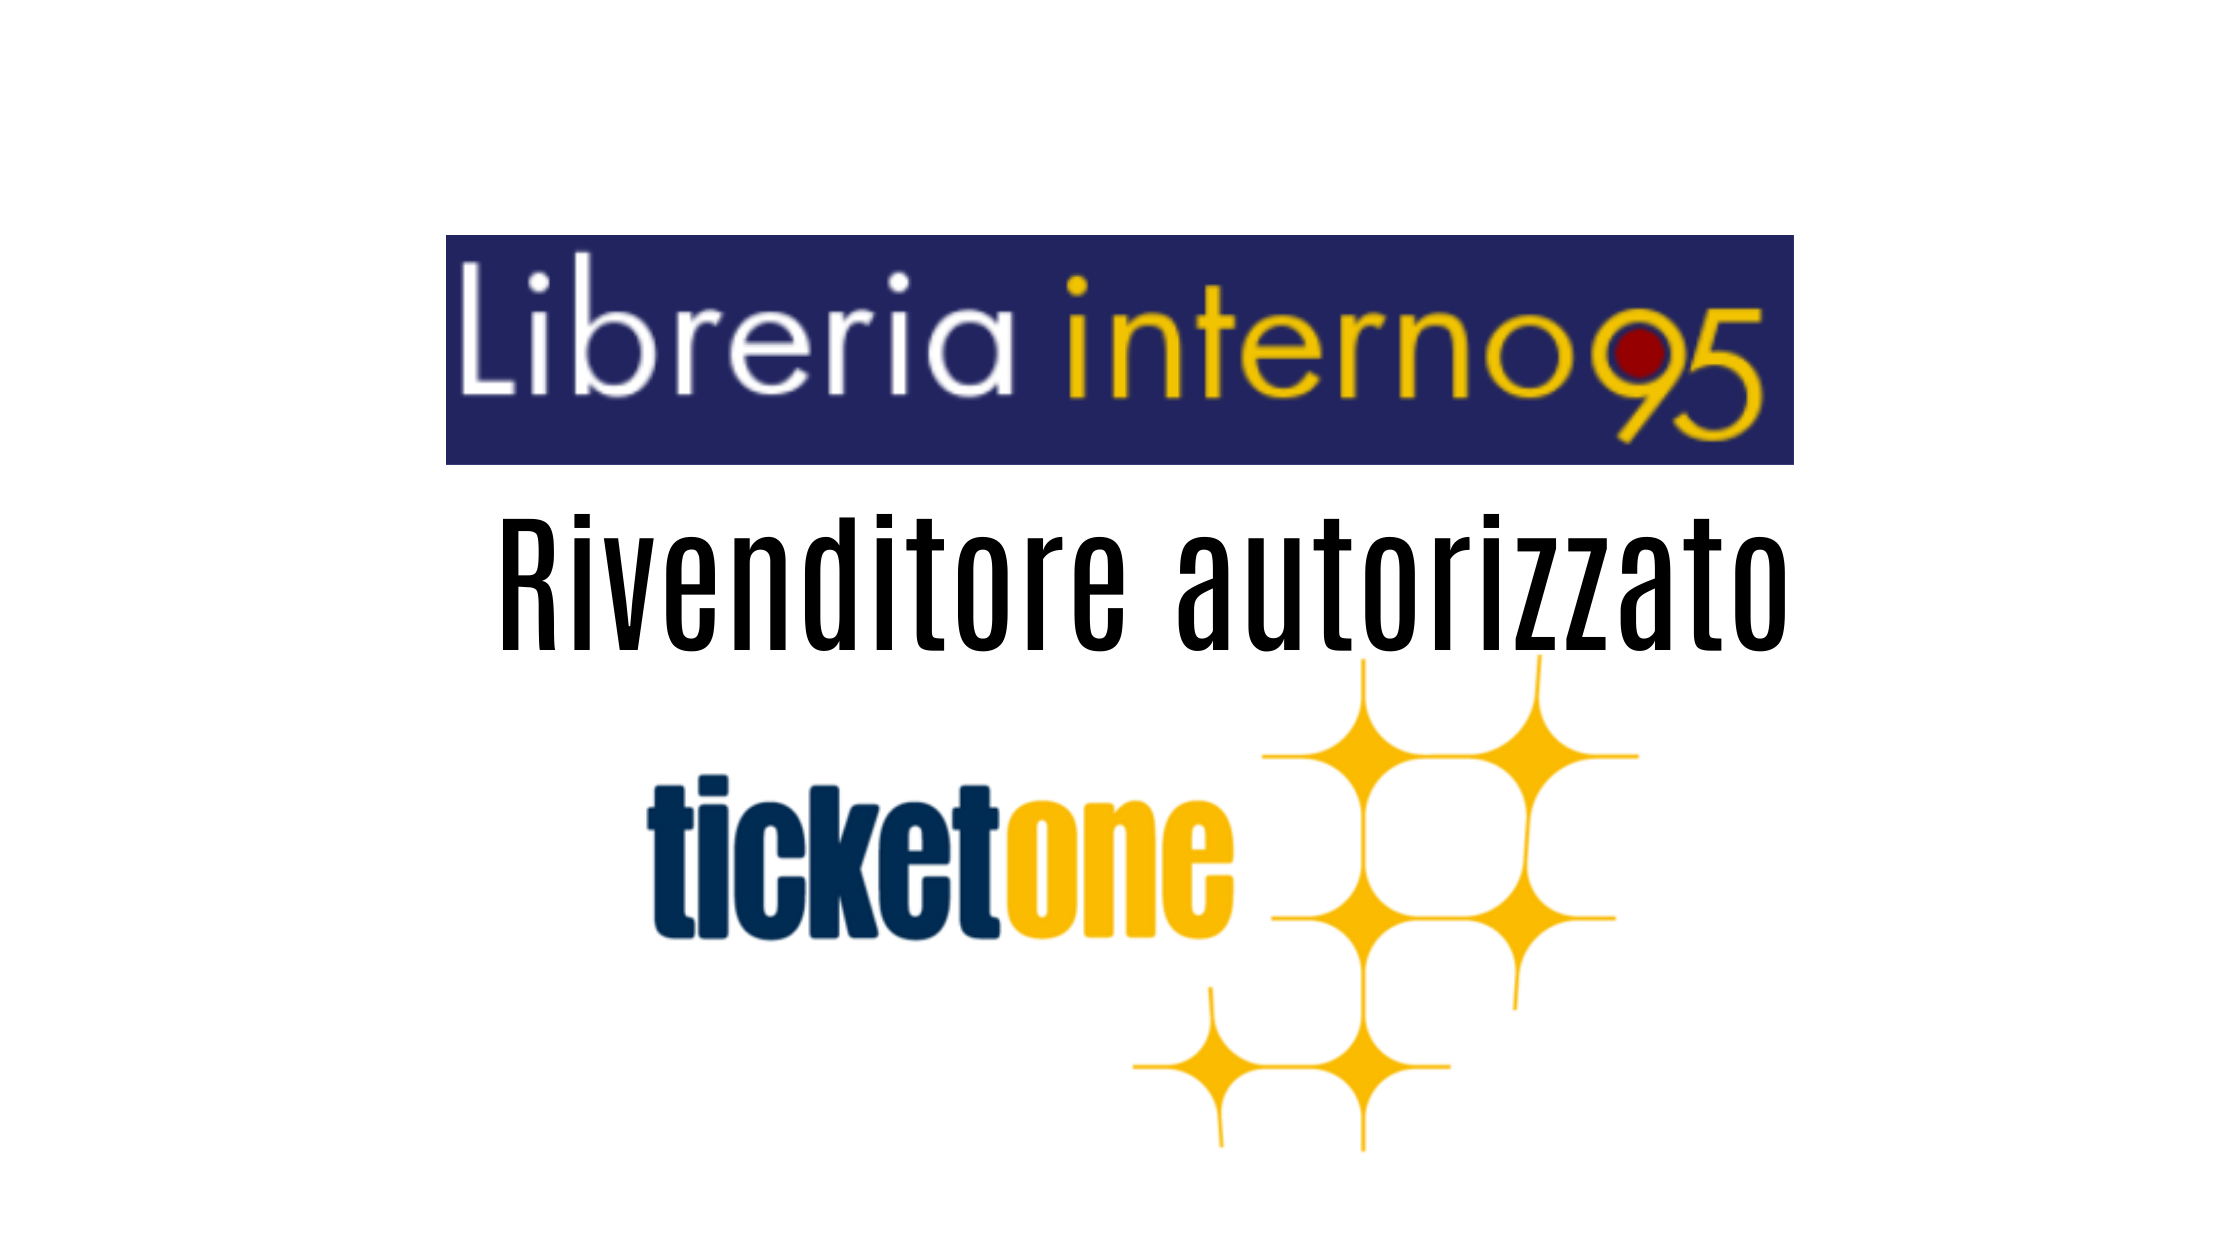 Ticketonenuovo